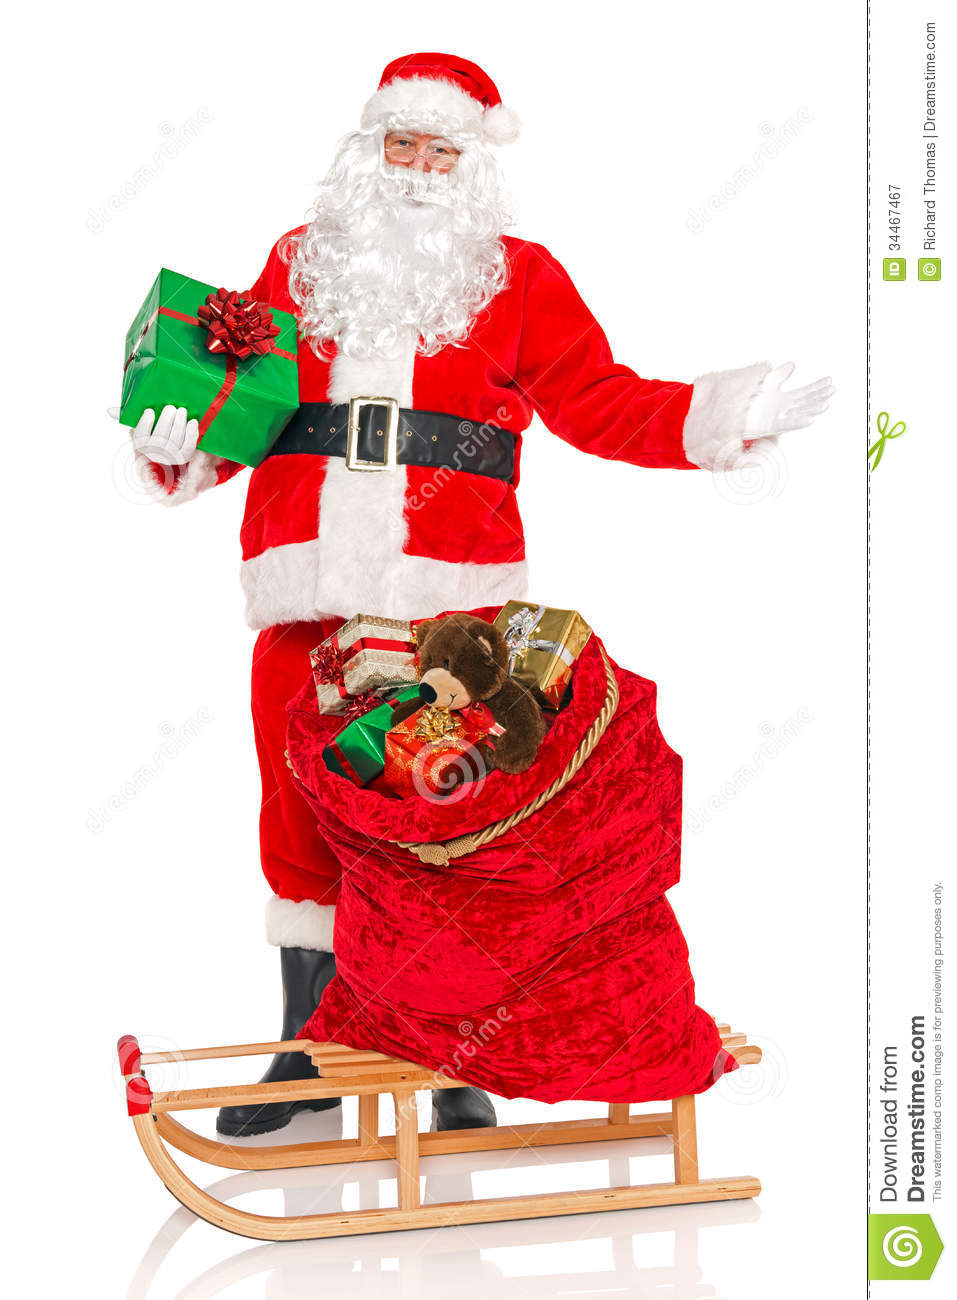 Toys From Santa : Santa with sack of toys and sledge isolated stock image